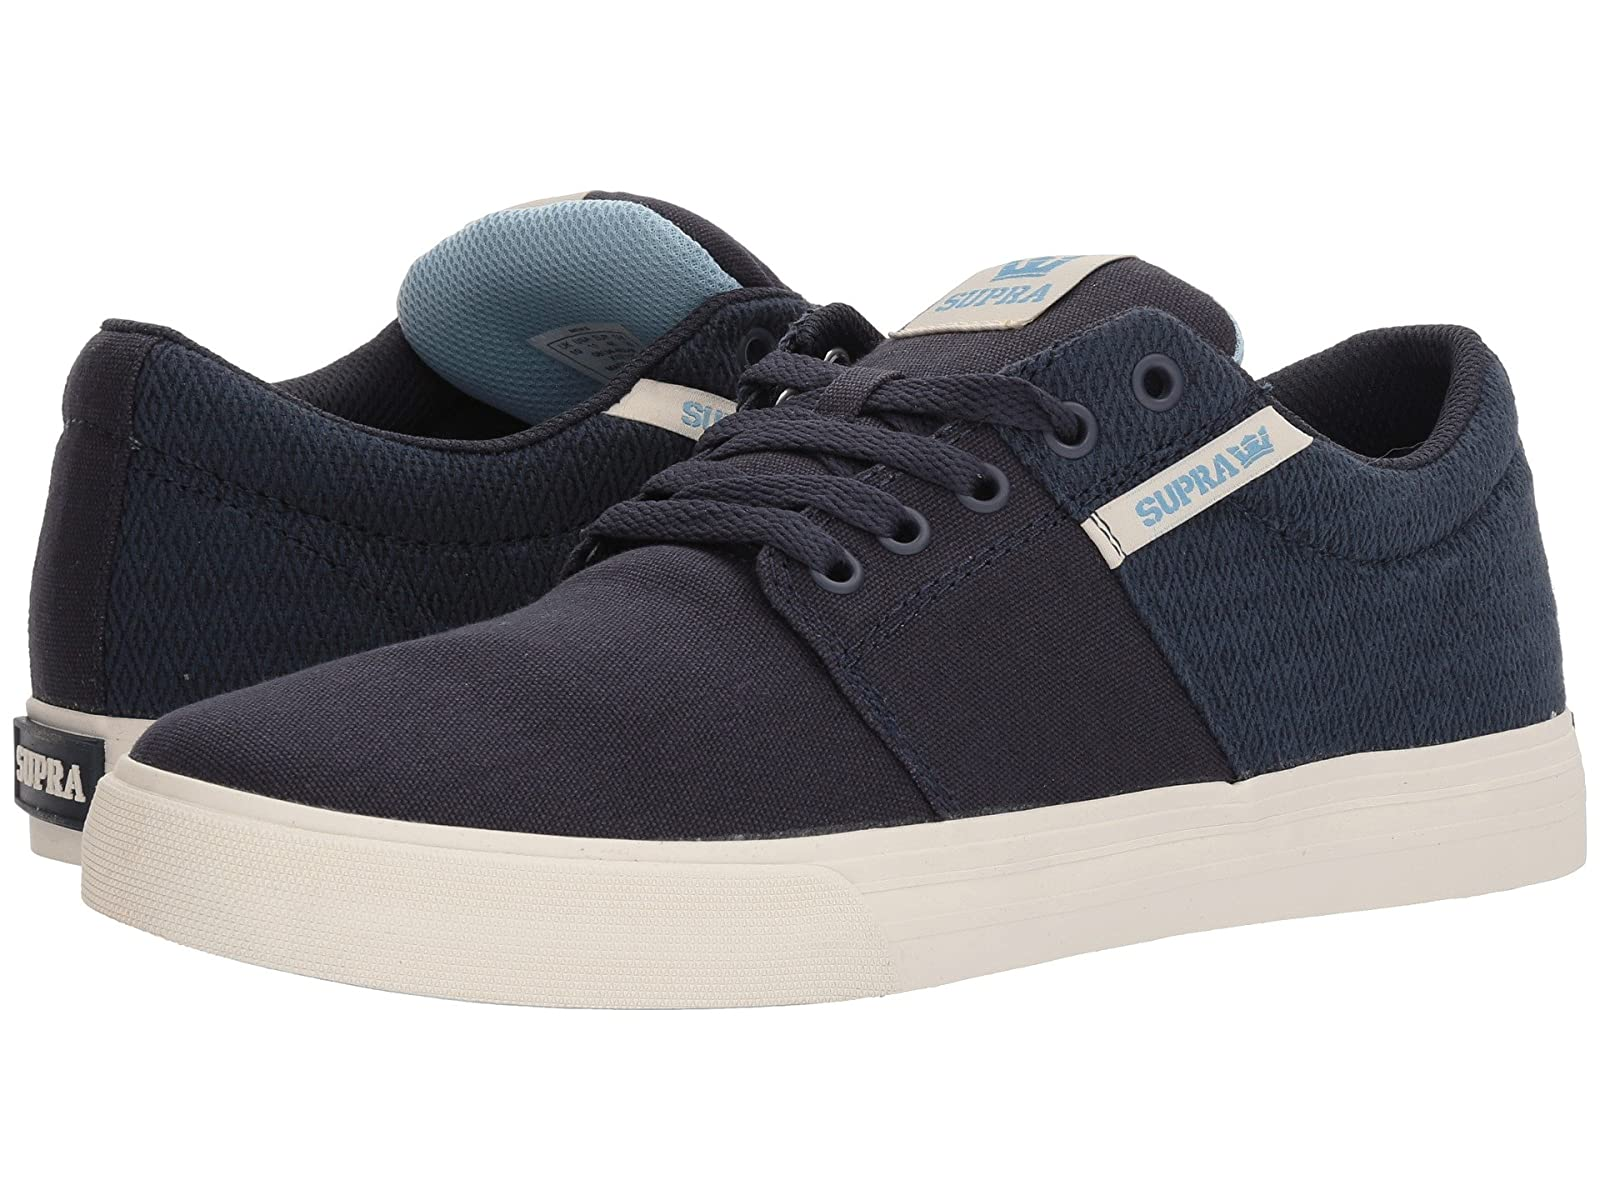 Supra Stacks Vulc IIAtmospheric grades have affordable shoes